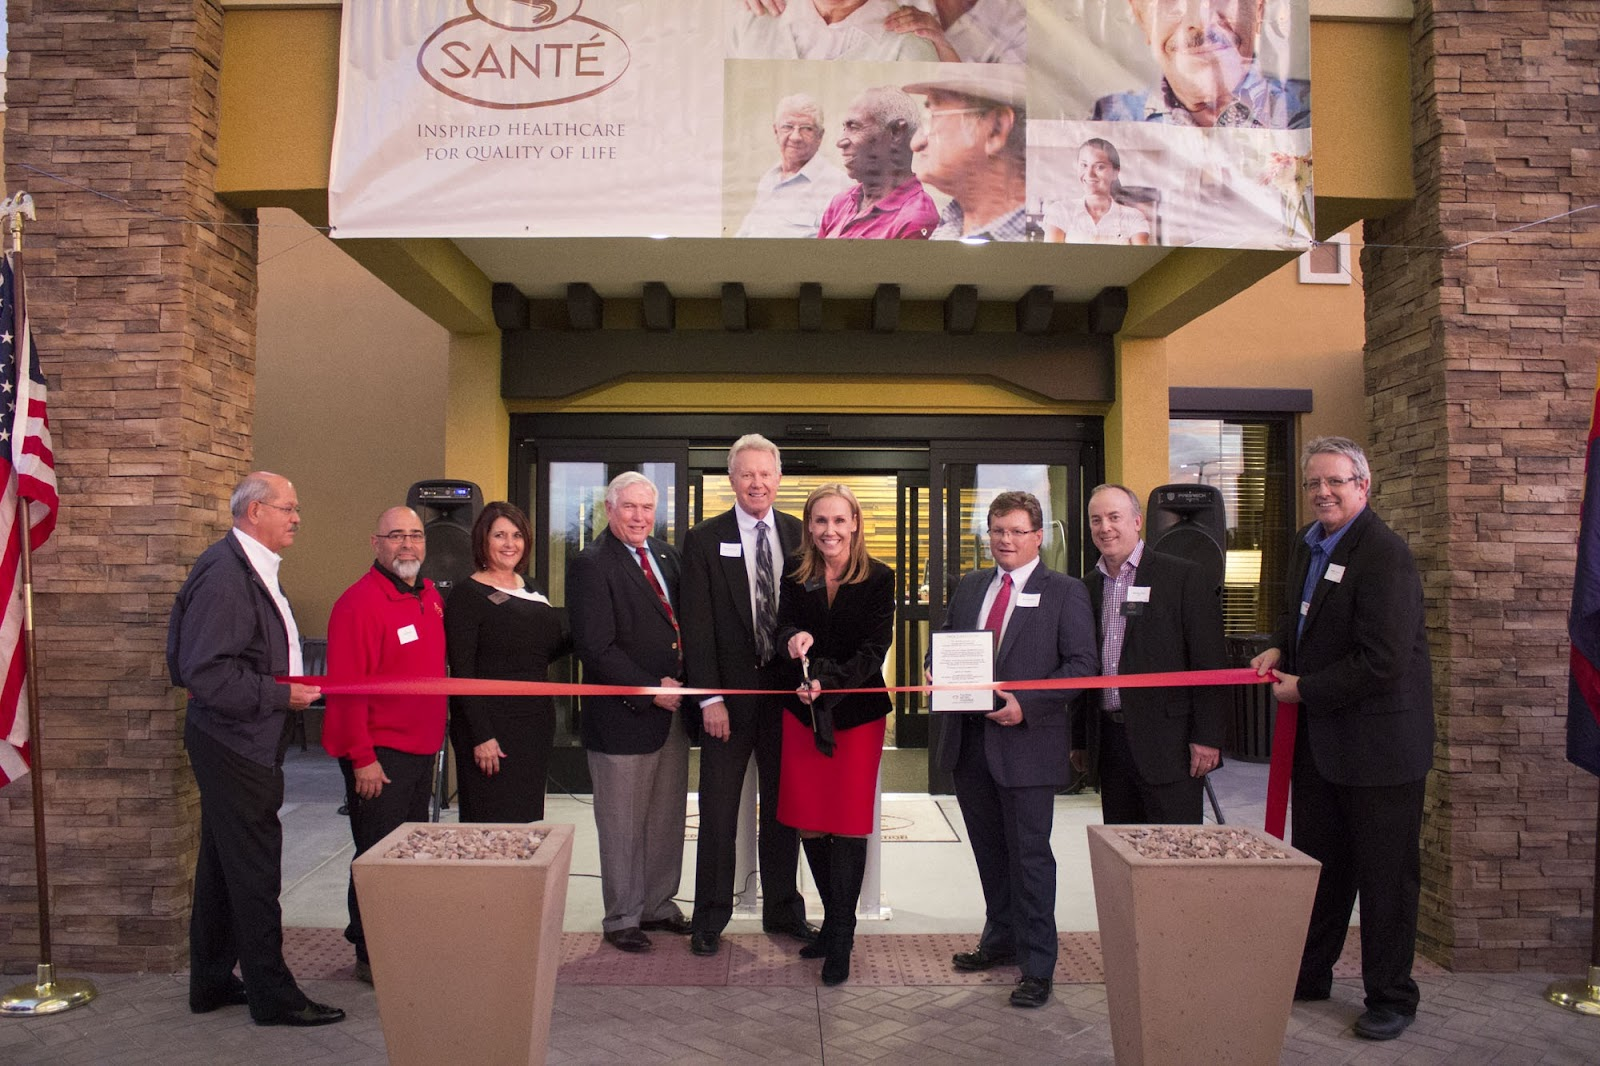 Congratulations to Sante' on their grand opening!  On December 7th, the Tucson Metro Chamber and Sante' celebrated the opening of Tucson's newest provider of post acute care and transitional rehabilitation with a ribbon cutting and VIP cocktail reception.  Sante' of Tucson is a groundbreaking combination of hospitality and healthcare designed to heal mind, body and spirit.  Open in January.